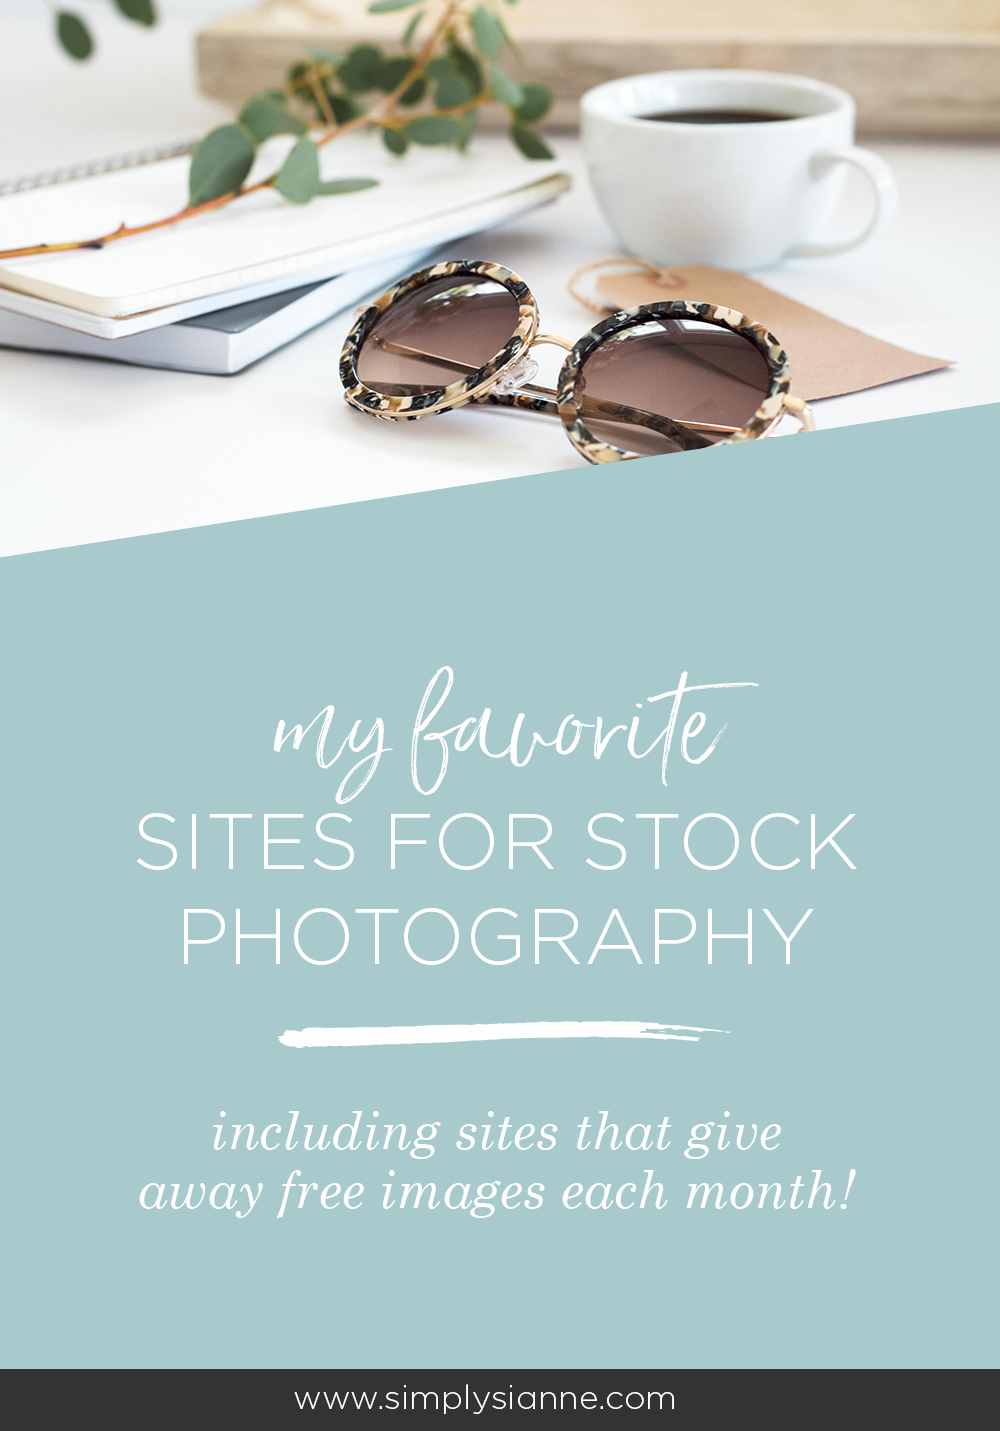 Rounding up my favorite sites for stock photography for the creative entrepreneur